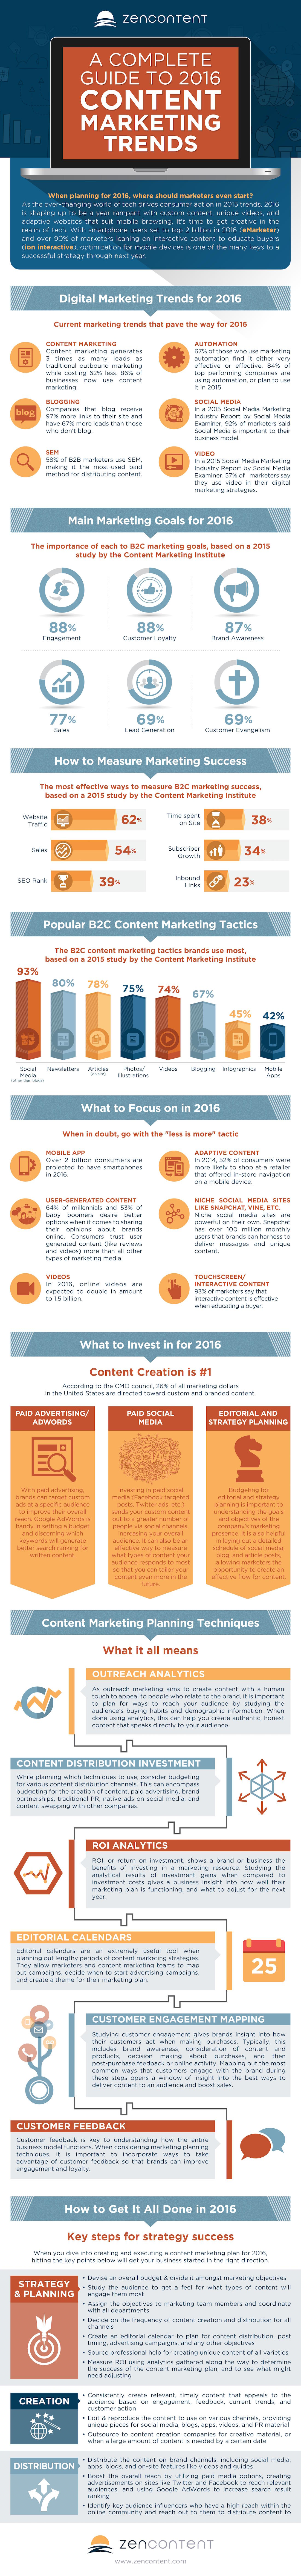 2016 Content Marketing Guide Infographic